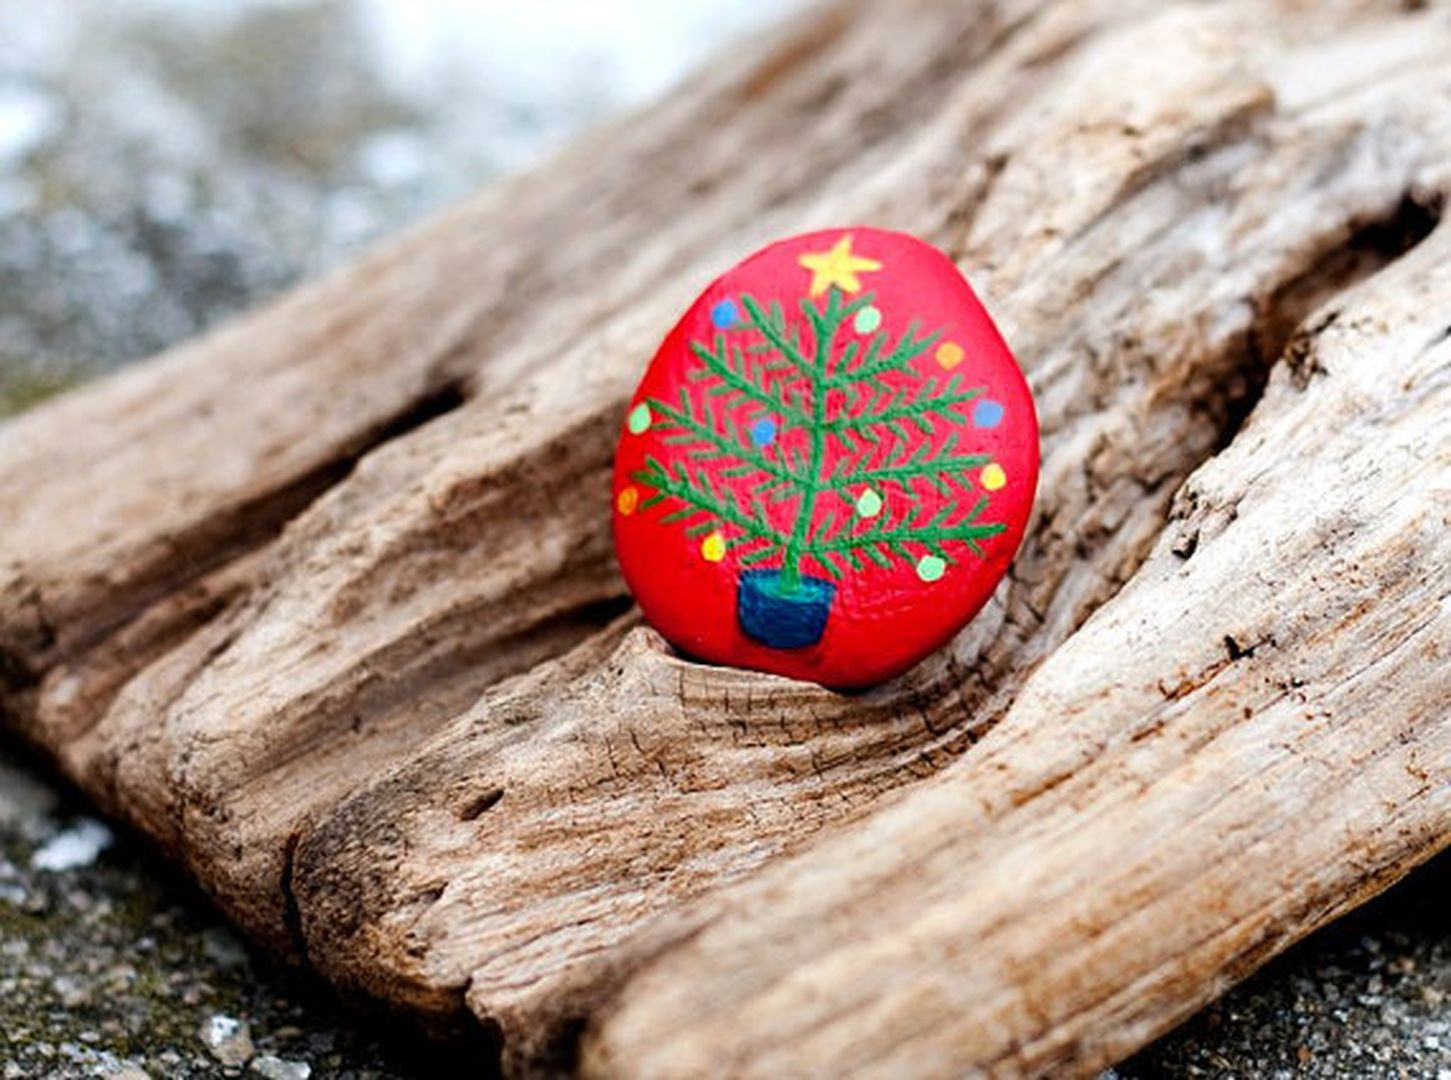 Best ideas about DIY Painted Rocks . Save or Pin Best DIY Christmas Painting Rocks Design 54 De agz Now.